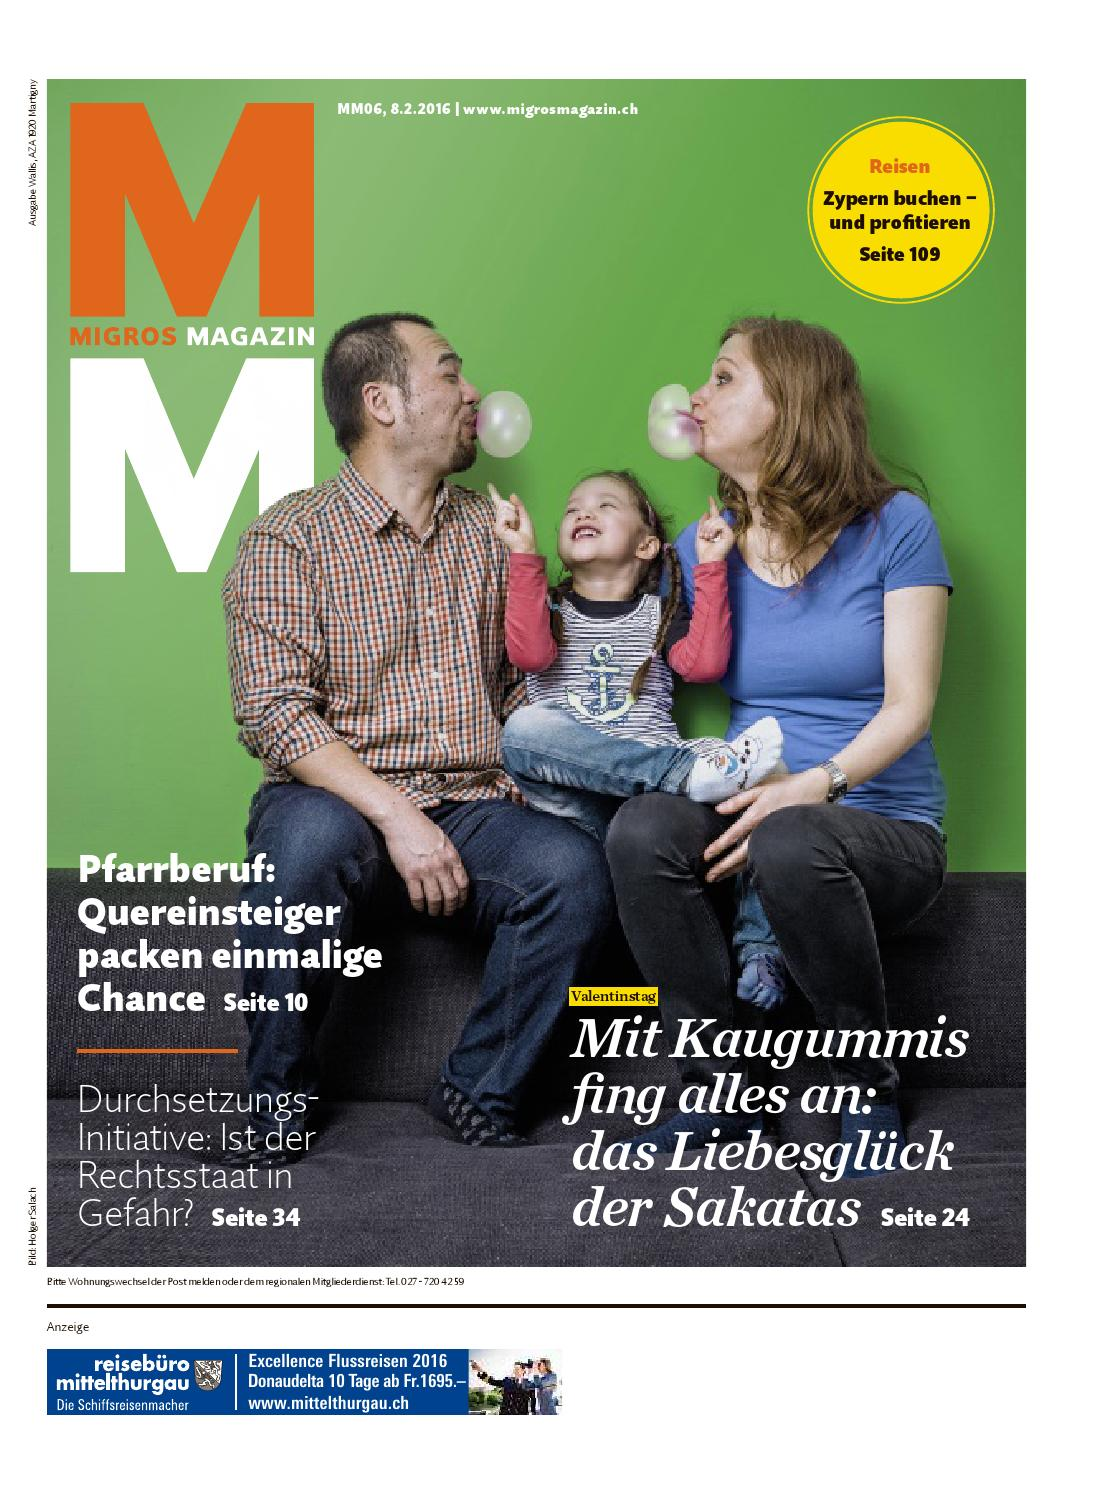 Migros magazin 06 2016 d vs by Migros-Genossenschafts-Bund - issuu